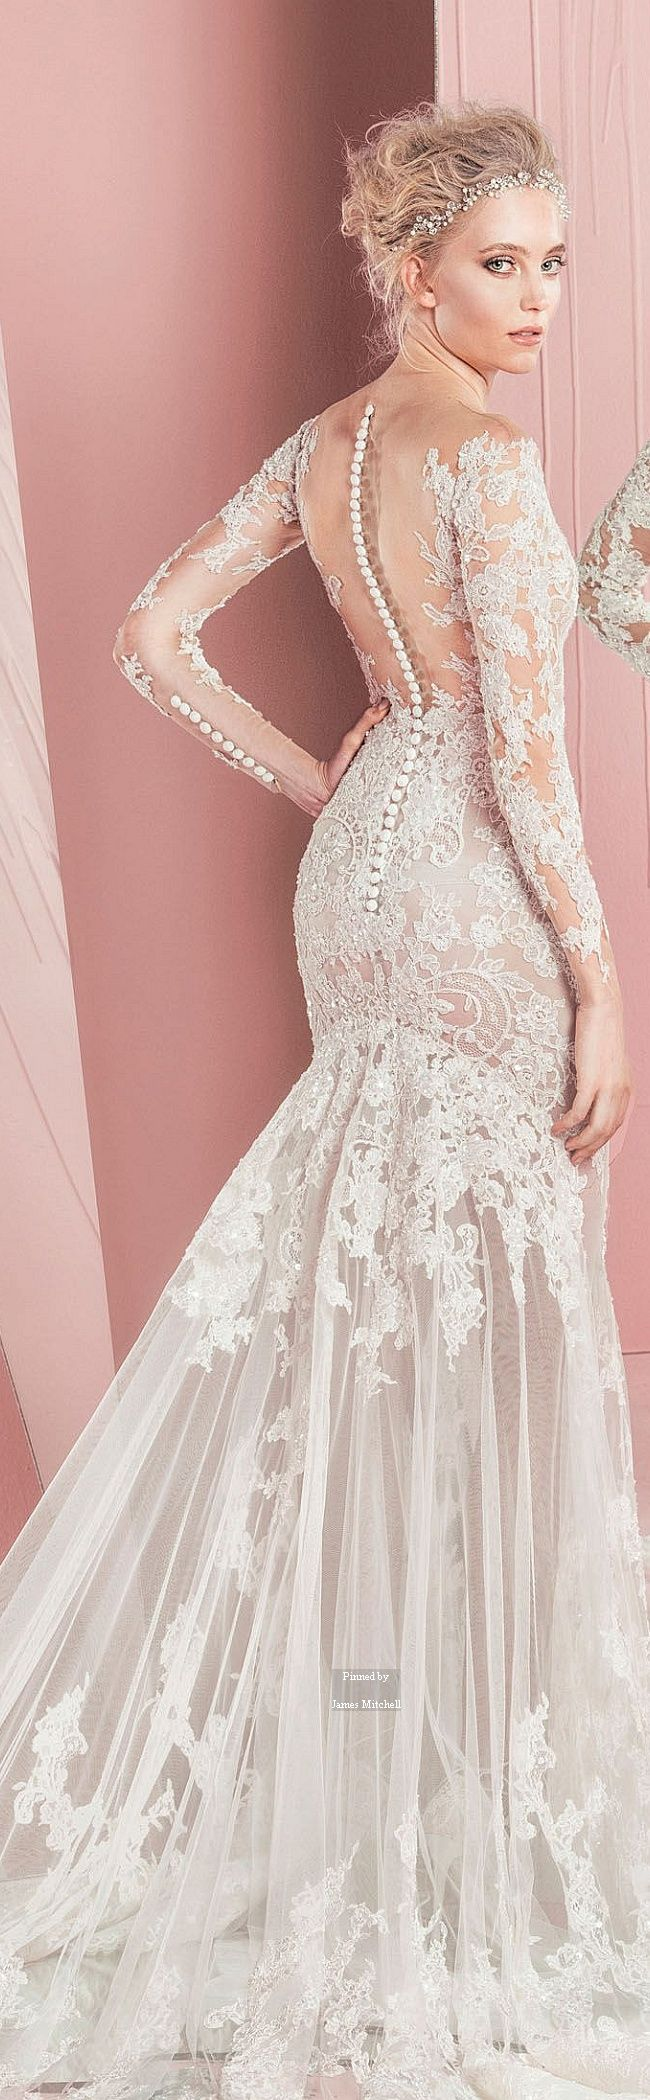 Zuhair Murad Bridal Spring-summer 2016 | Every Girl Loves A Wedding ...